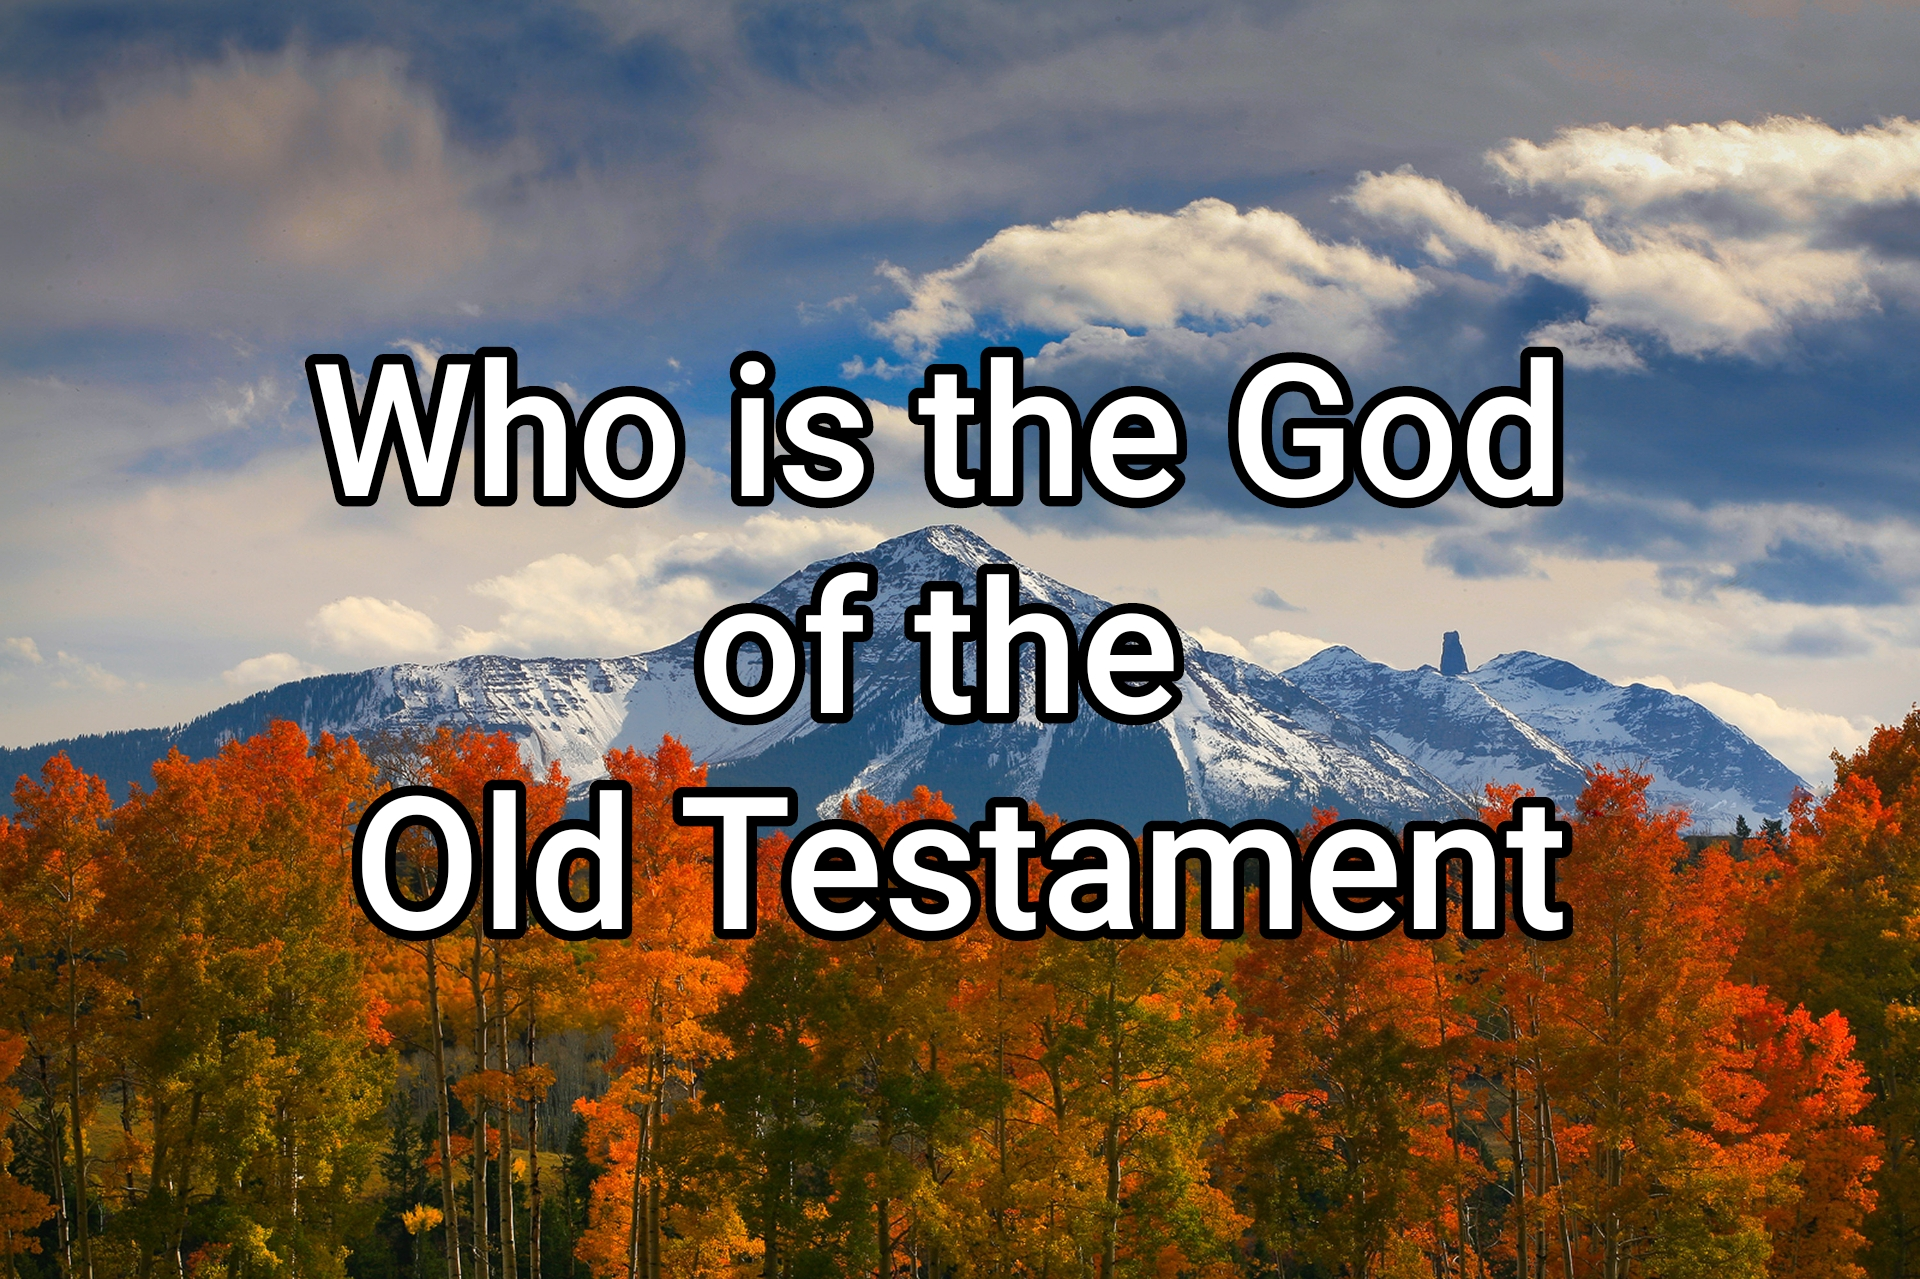 Who Is the God of the Old Testament